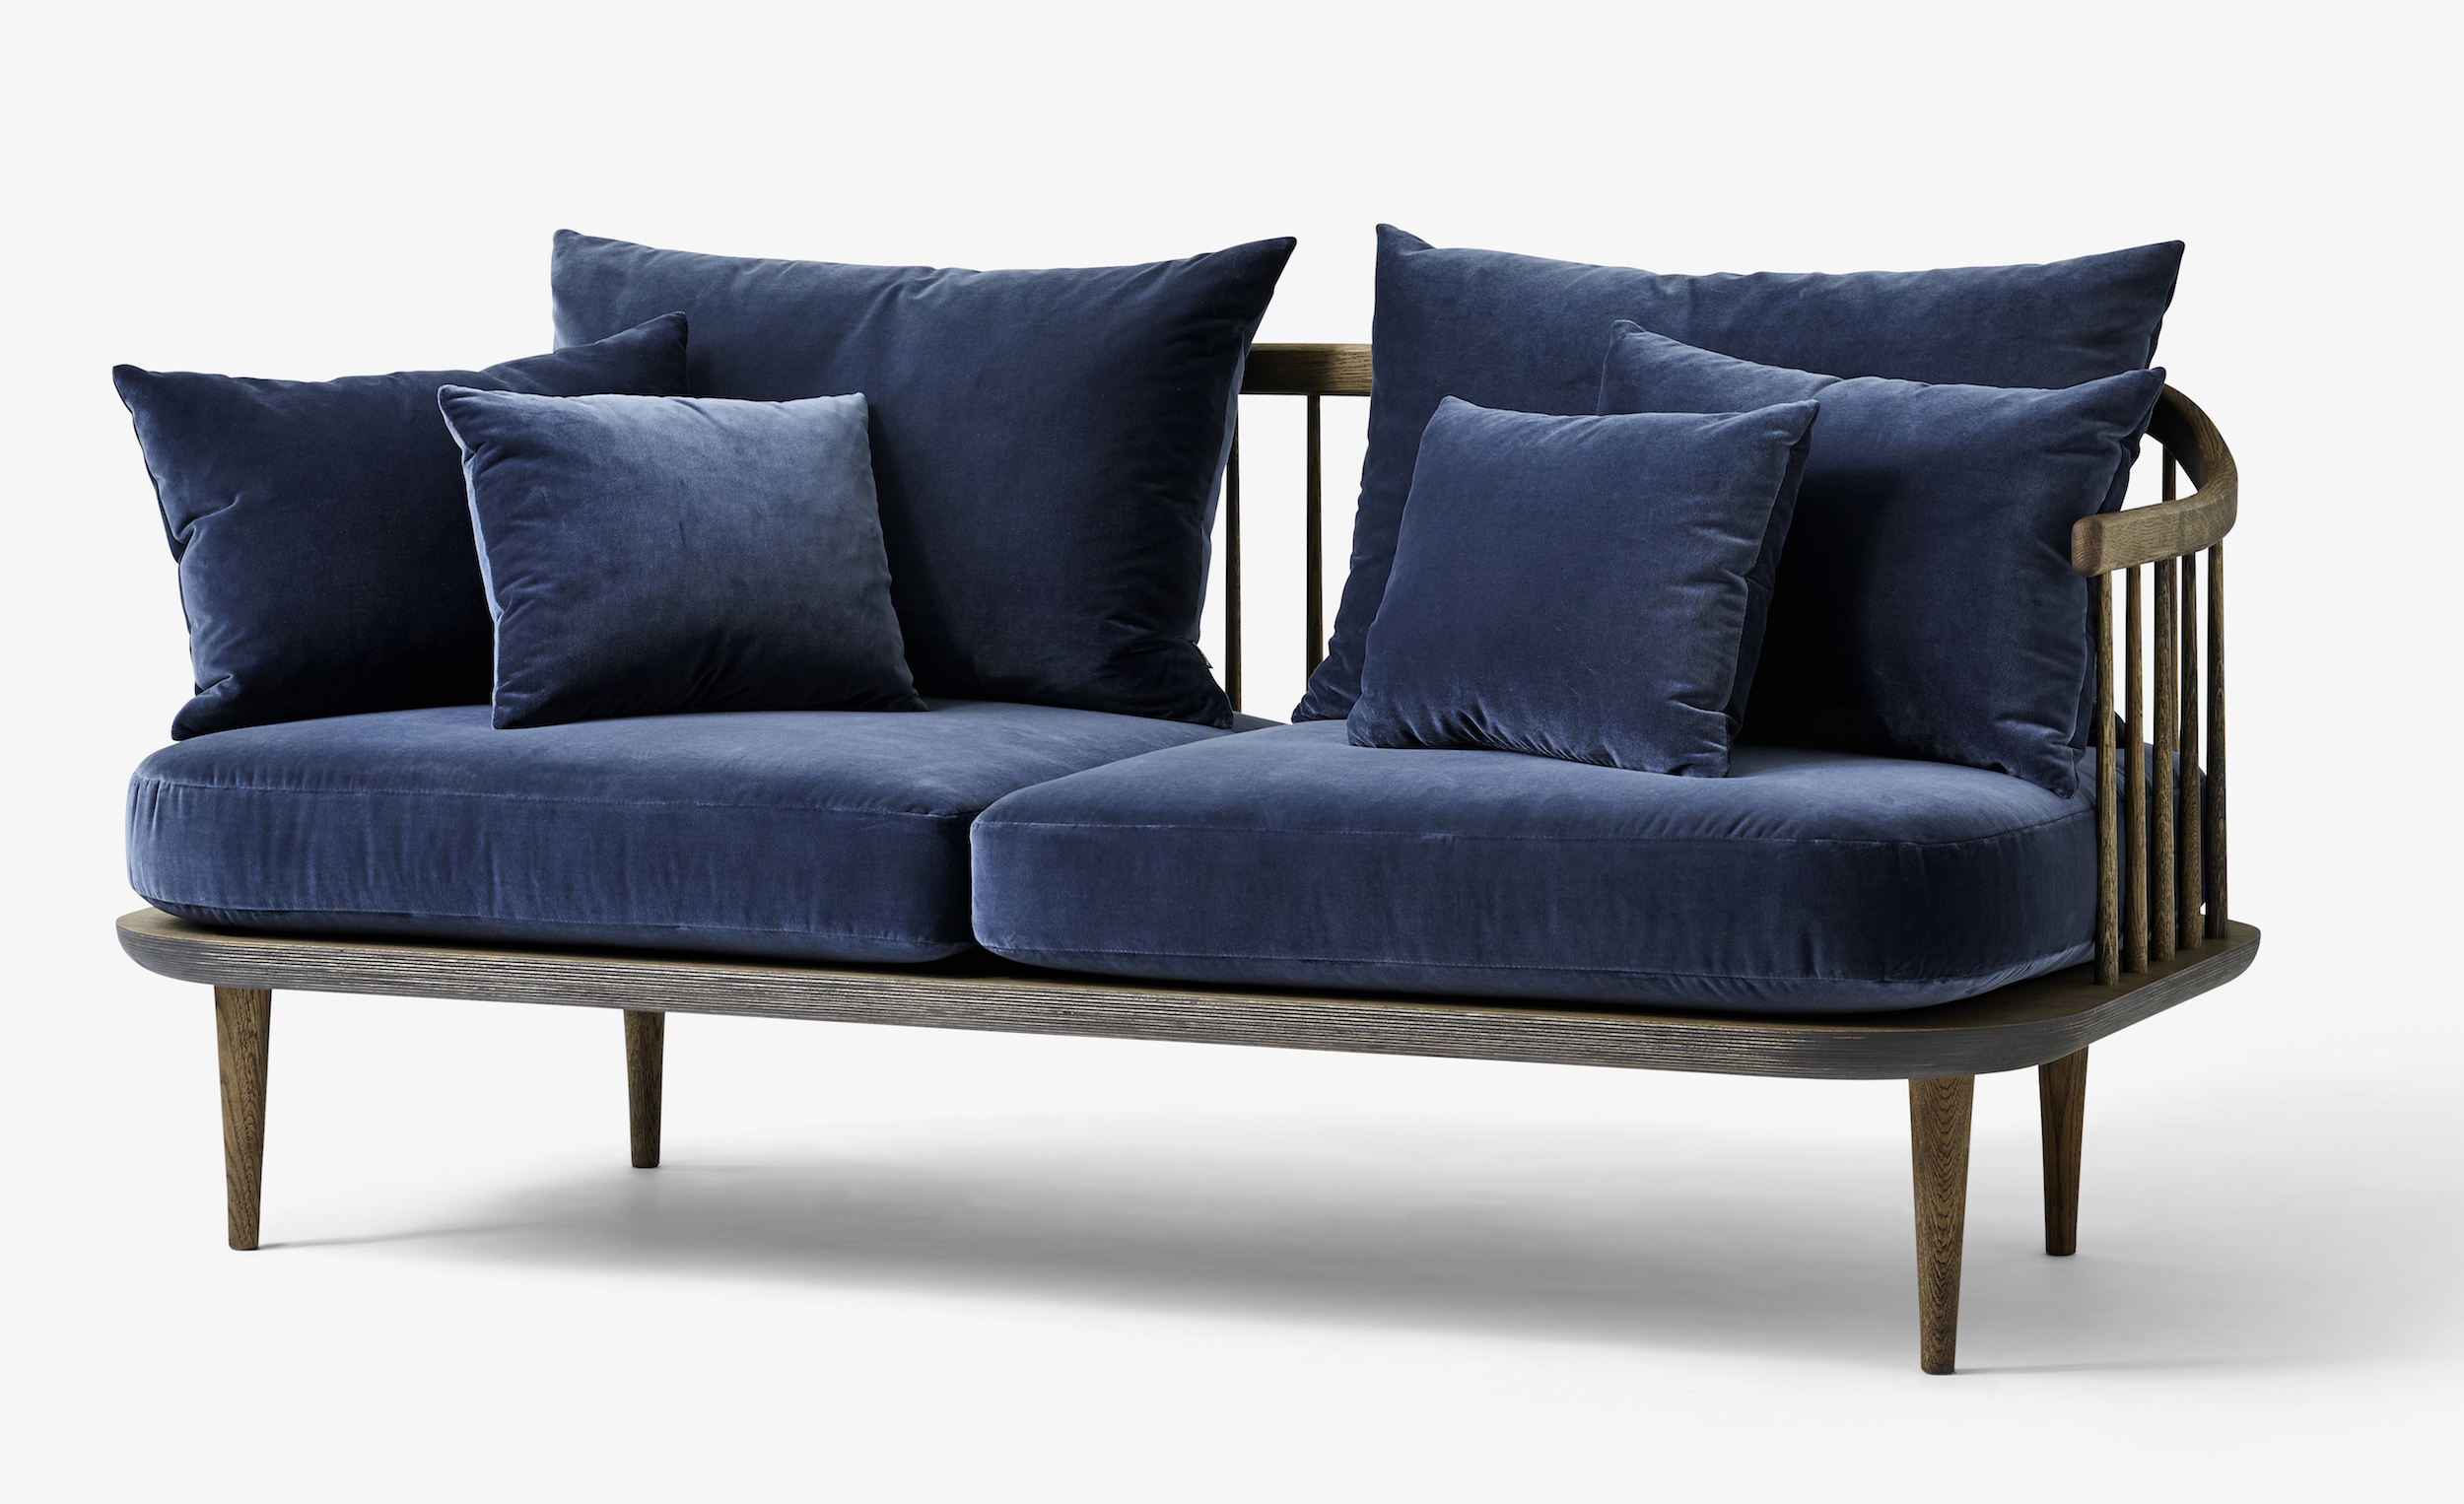 &Tradition – FLY sofas & lounge chairs - design Space Copenhagen